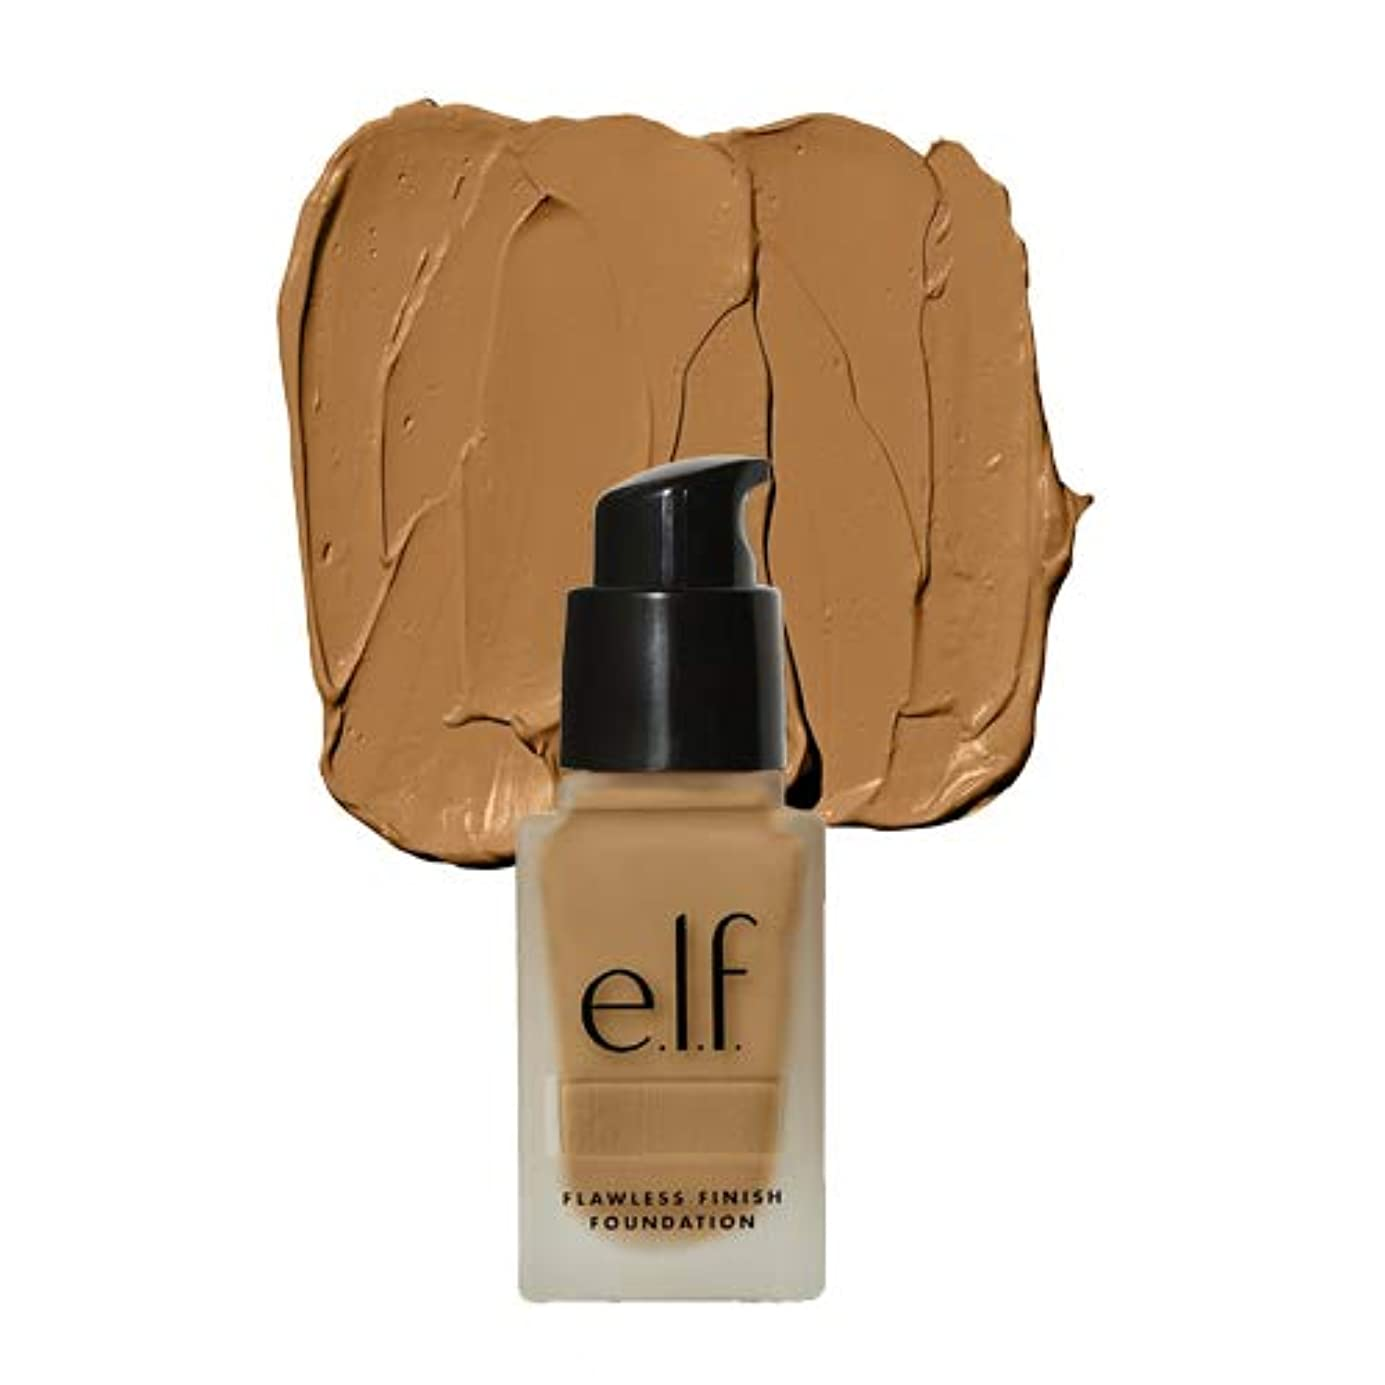 抜本的な先駆者腹痛(6 Pack) e.l.f. Oil Free Flawless Finish Foundation - Linen (並行輸入品)